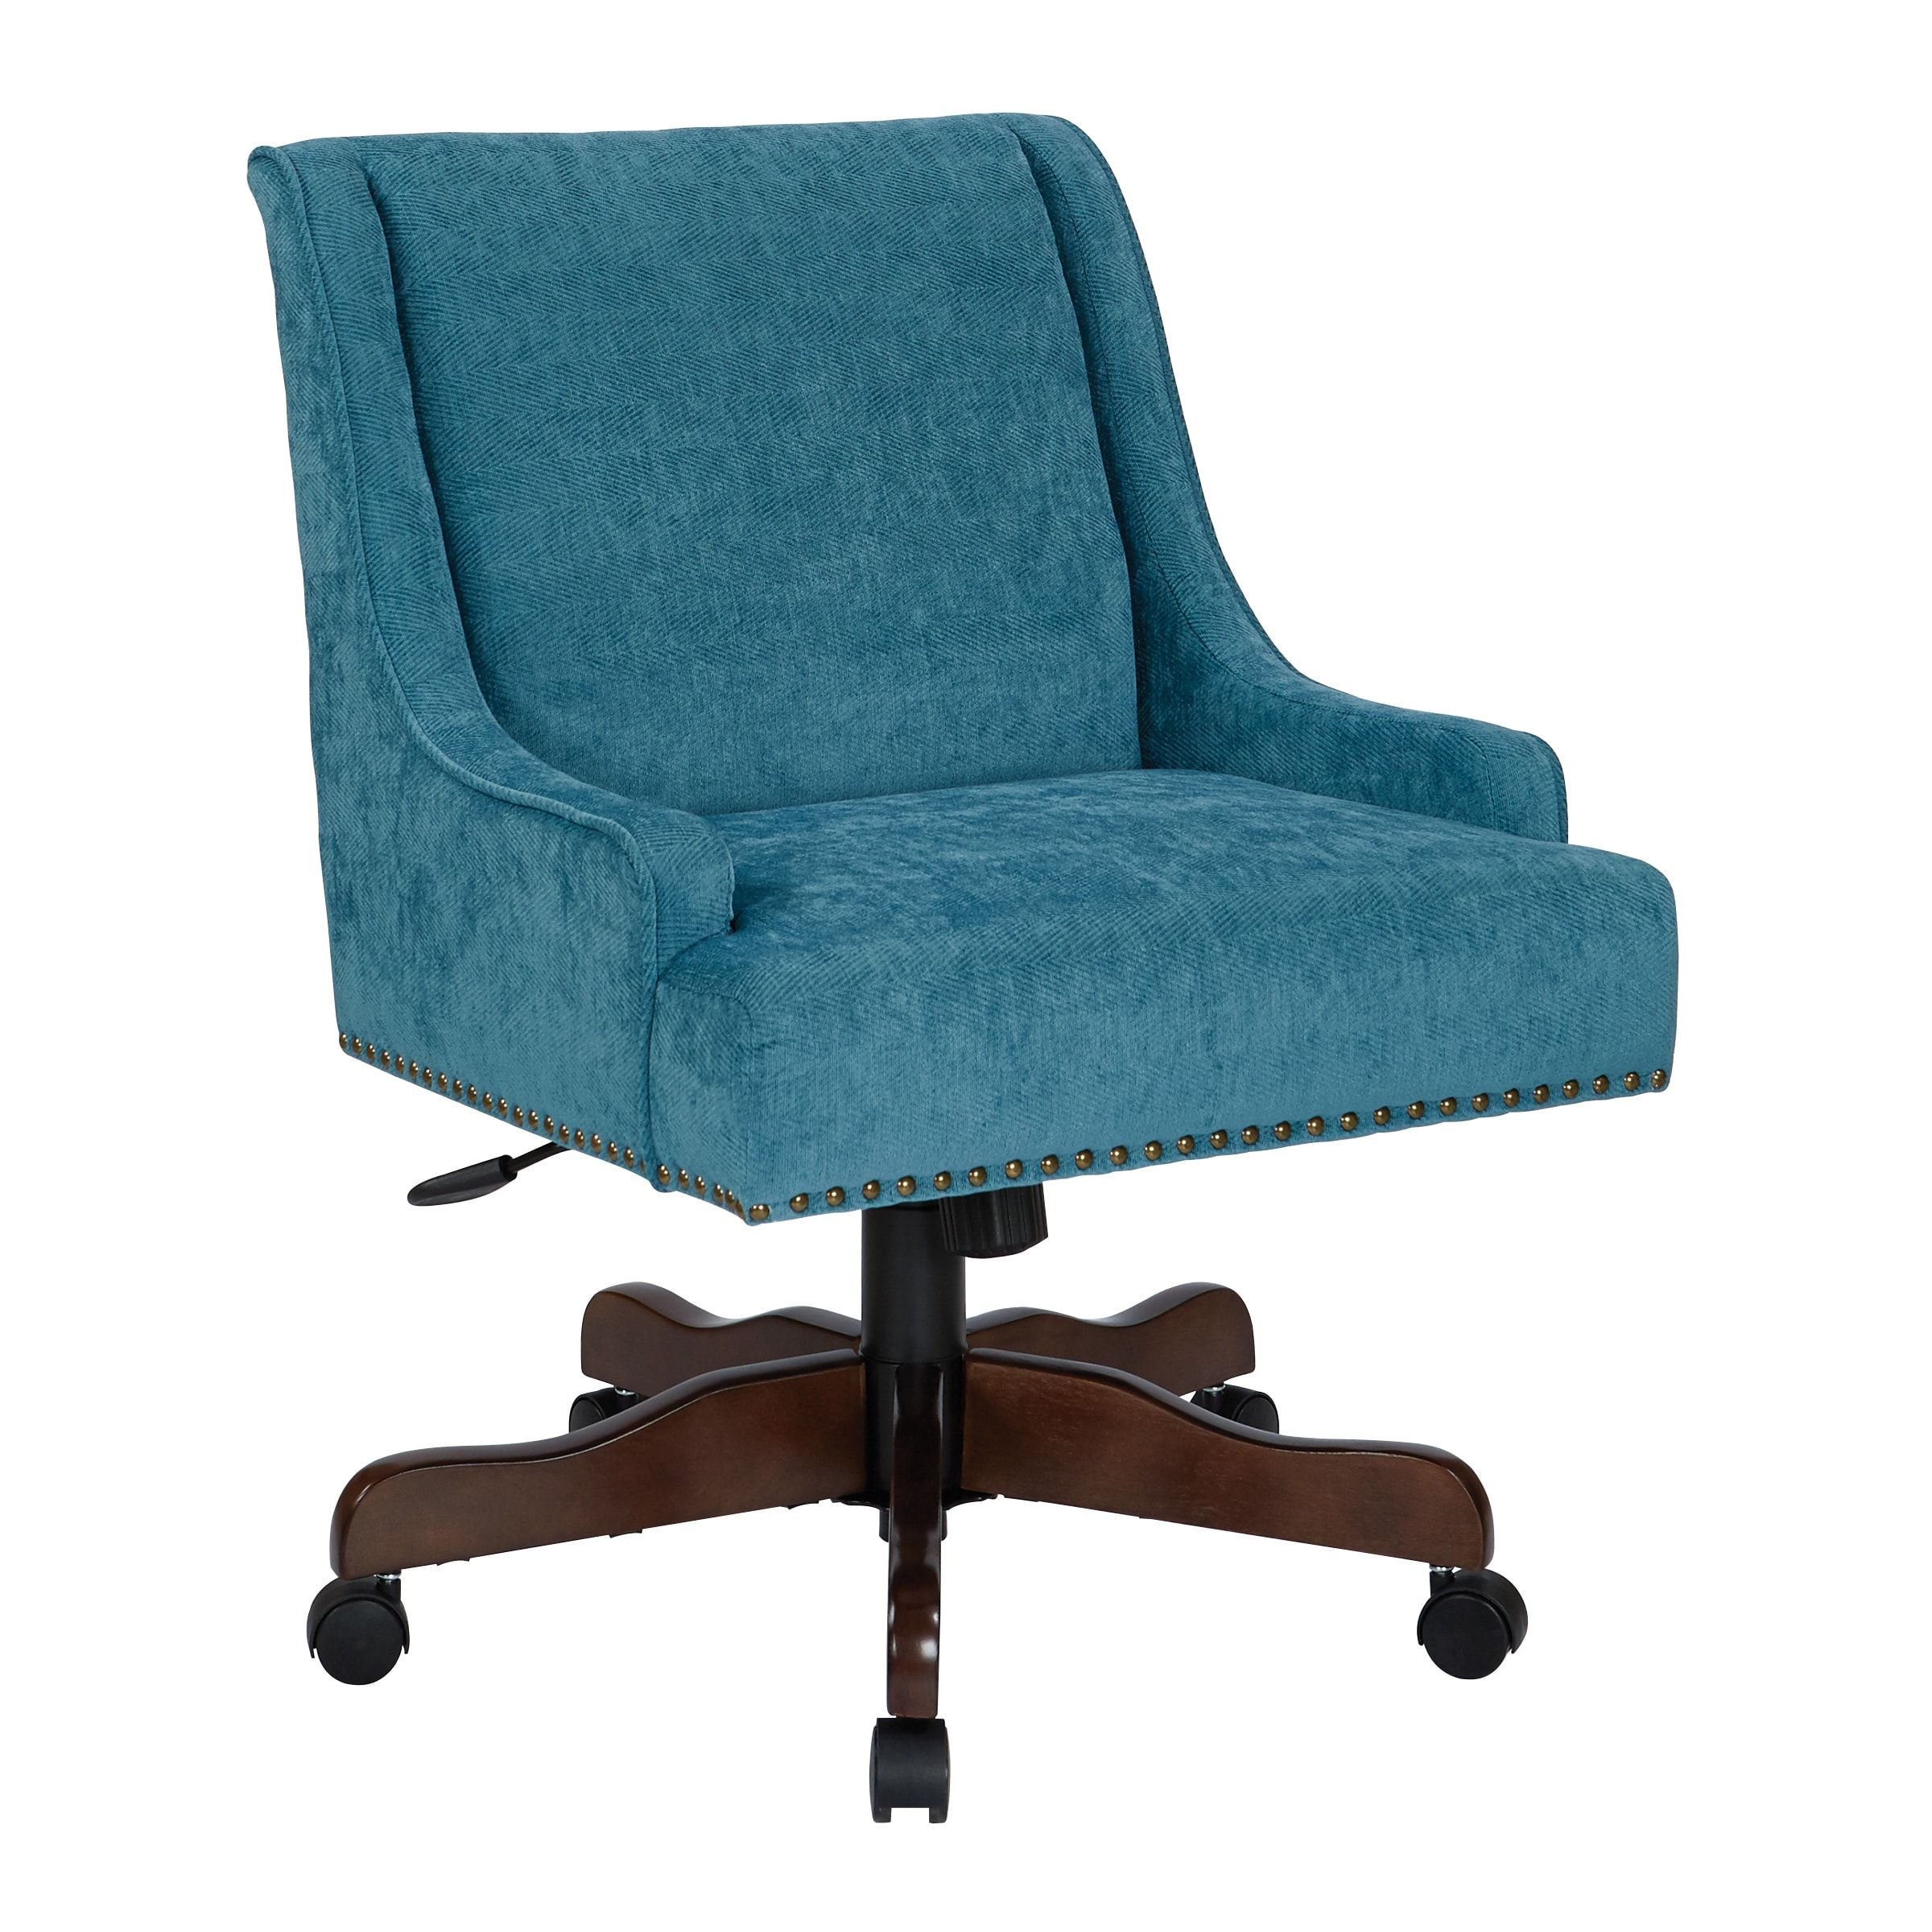 Everton Midcentury Home Office Chair in Sky Fabric with